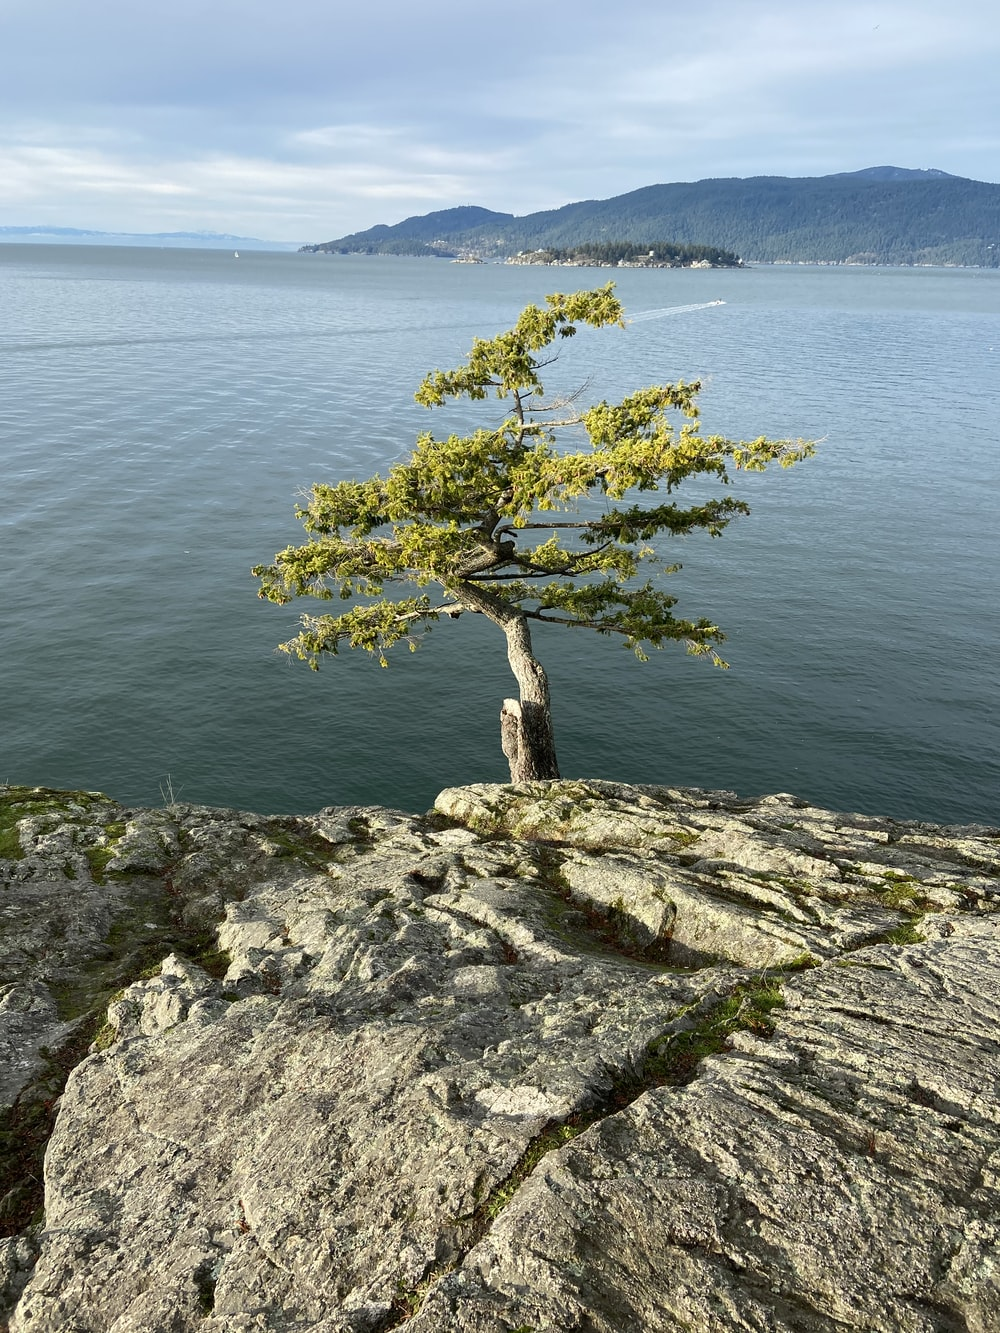 green tree on gray rock near body of water during daytime